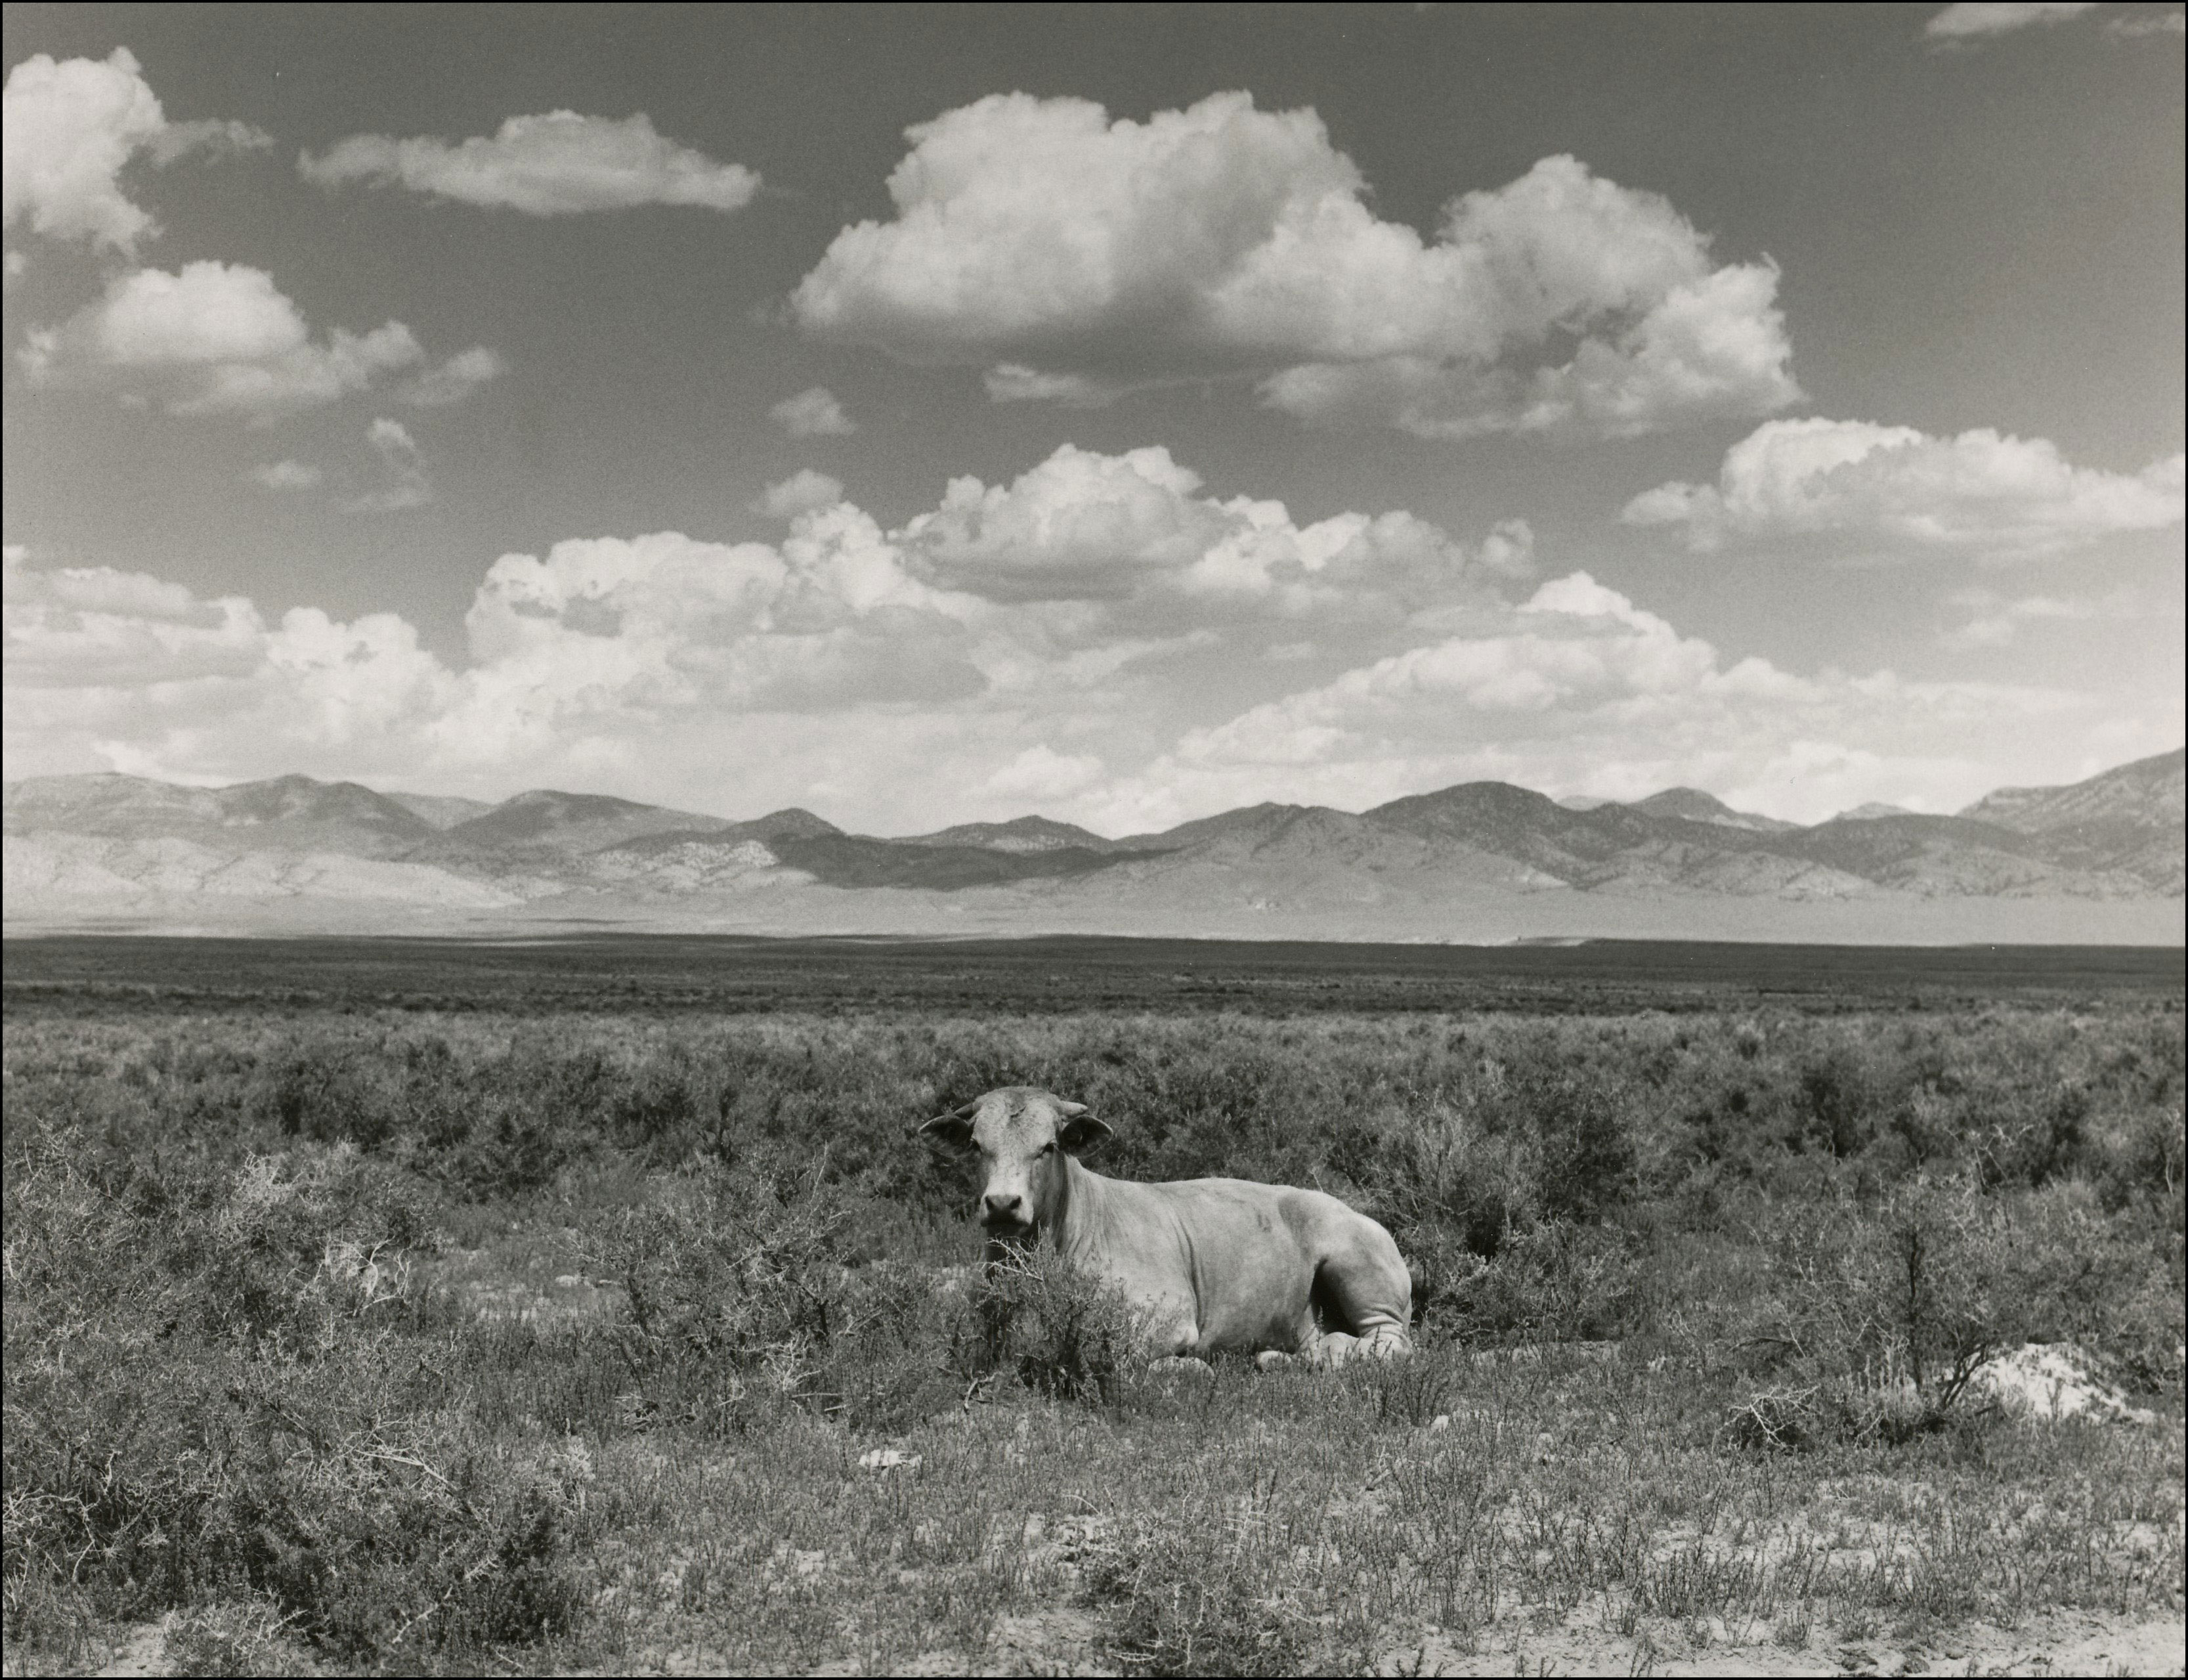 Cow sitting in open area of sagebrush. Mountains inthe background